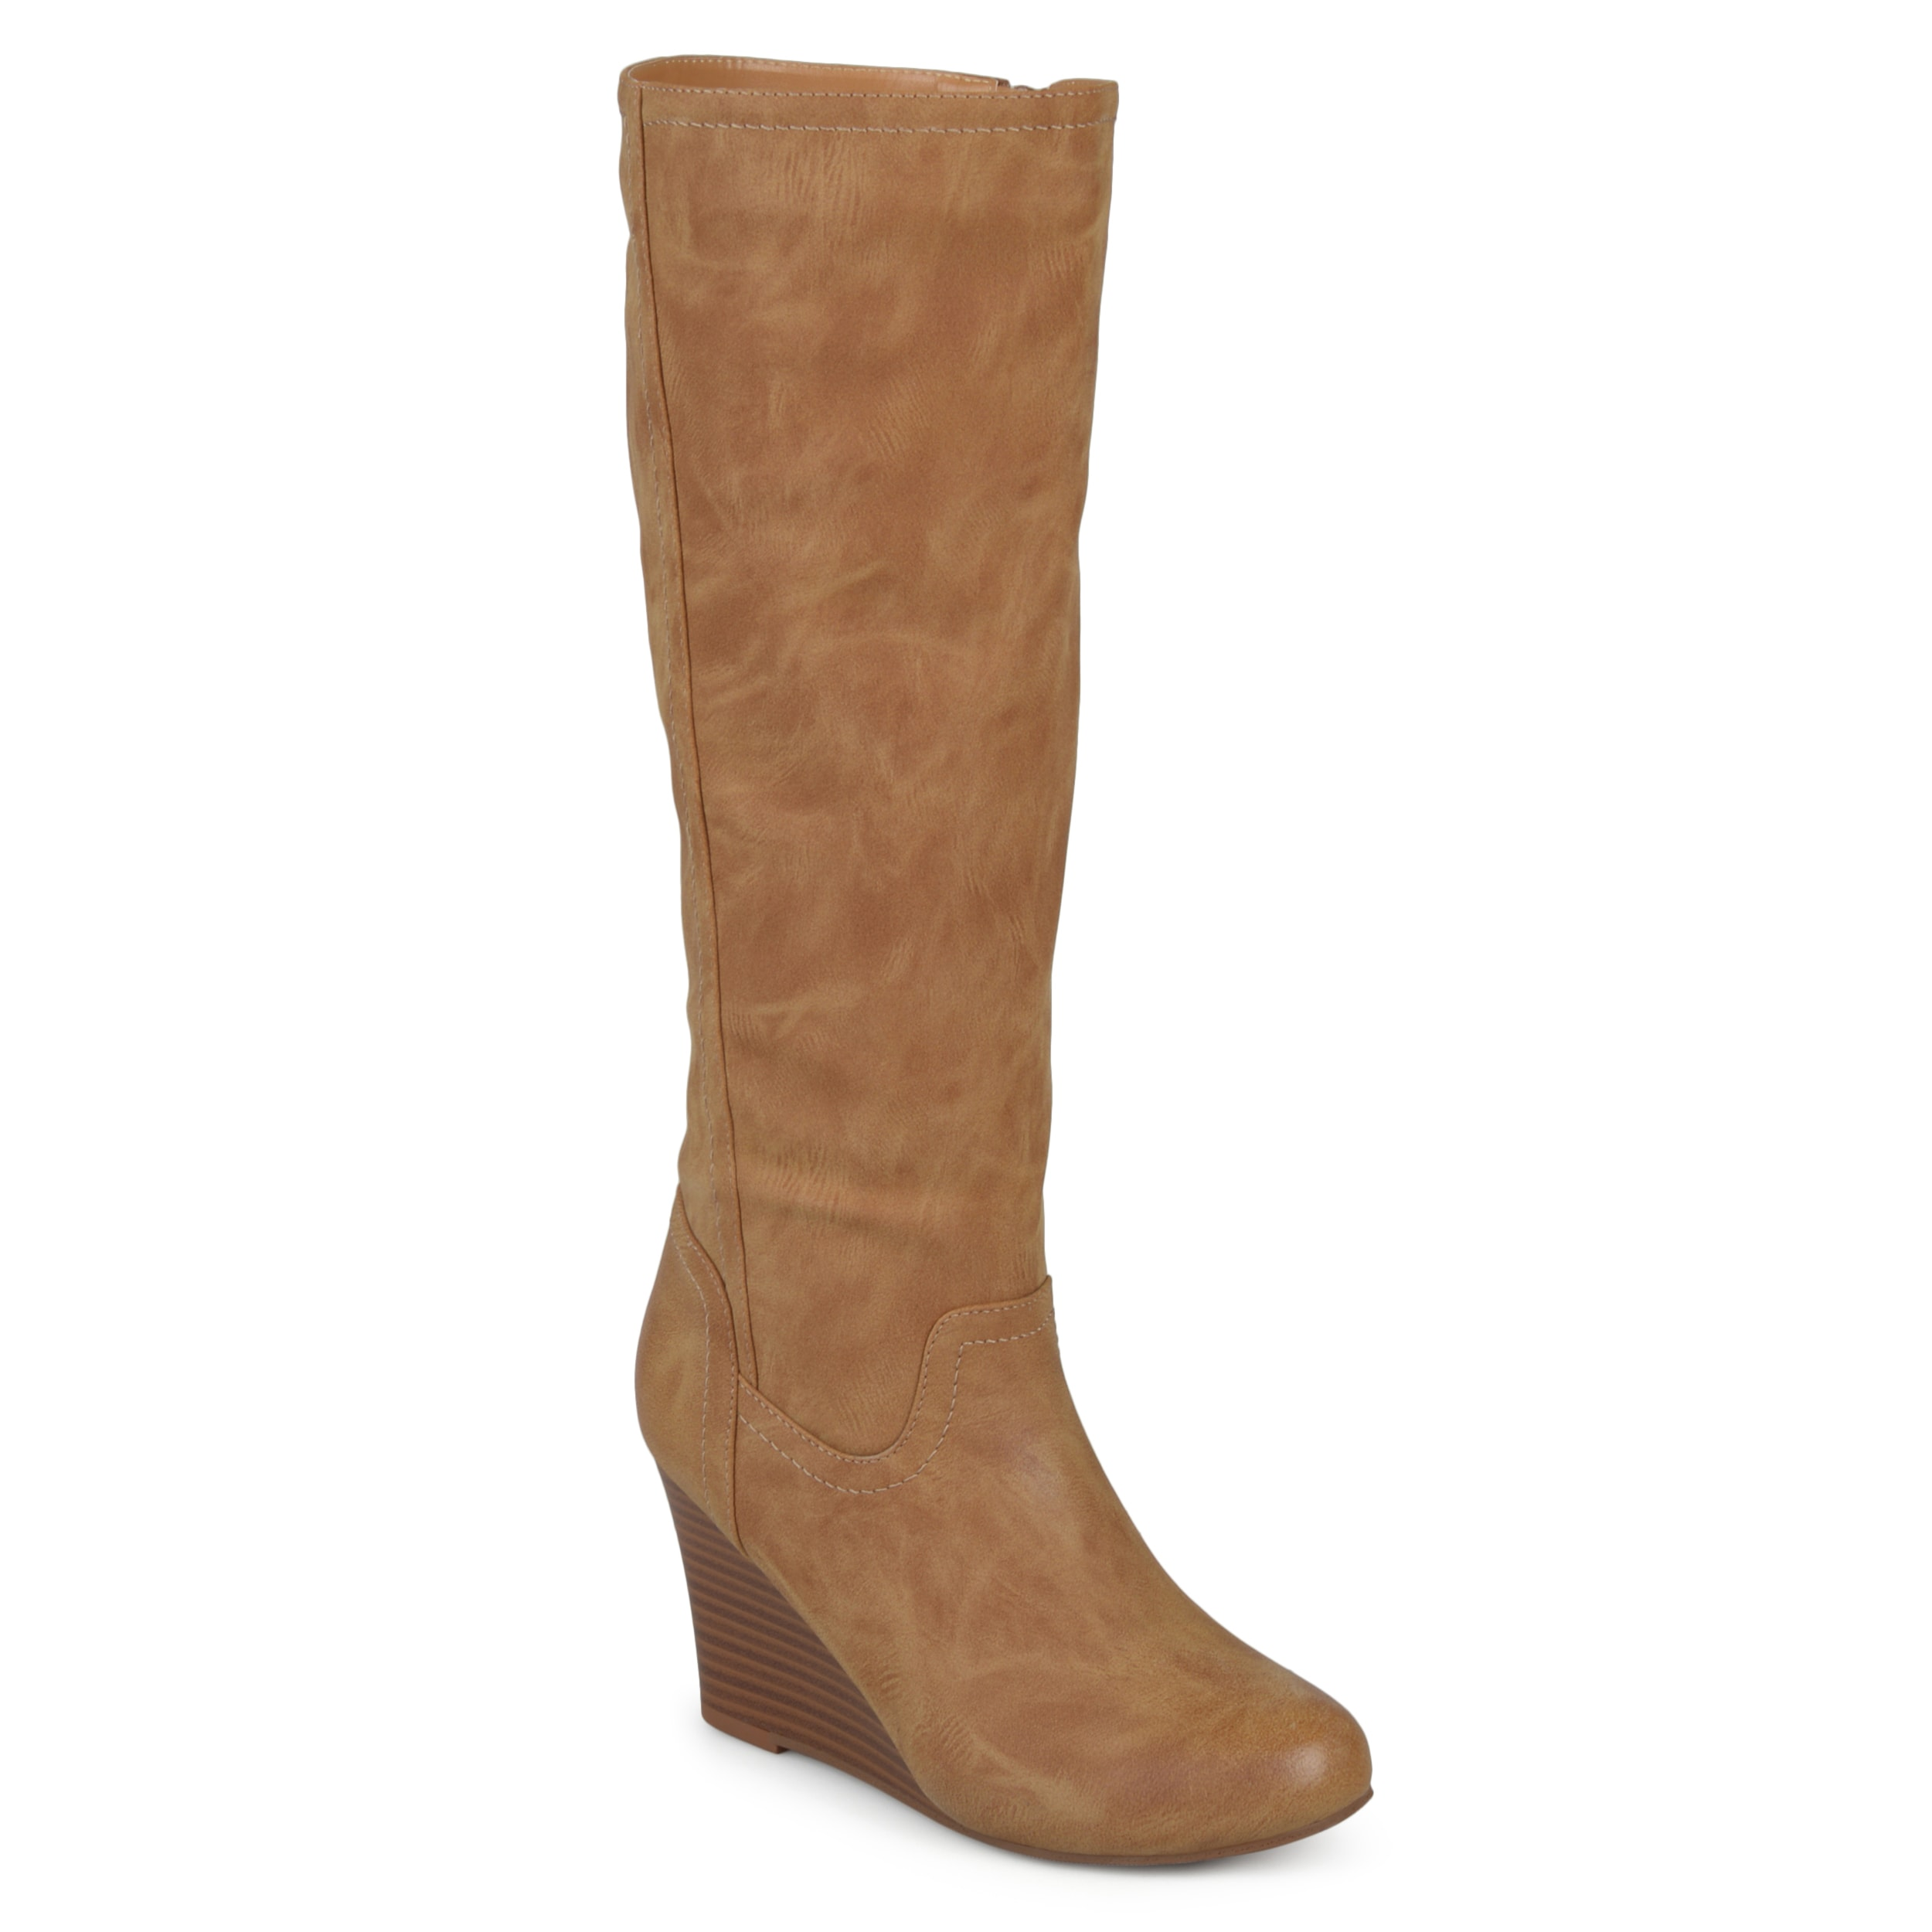 adf060d90 Journee Collection Women's 'Langly' Regular and Wide Calf Round Toe Mid-calf  Wedge Boots